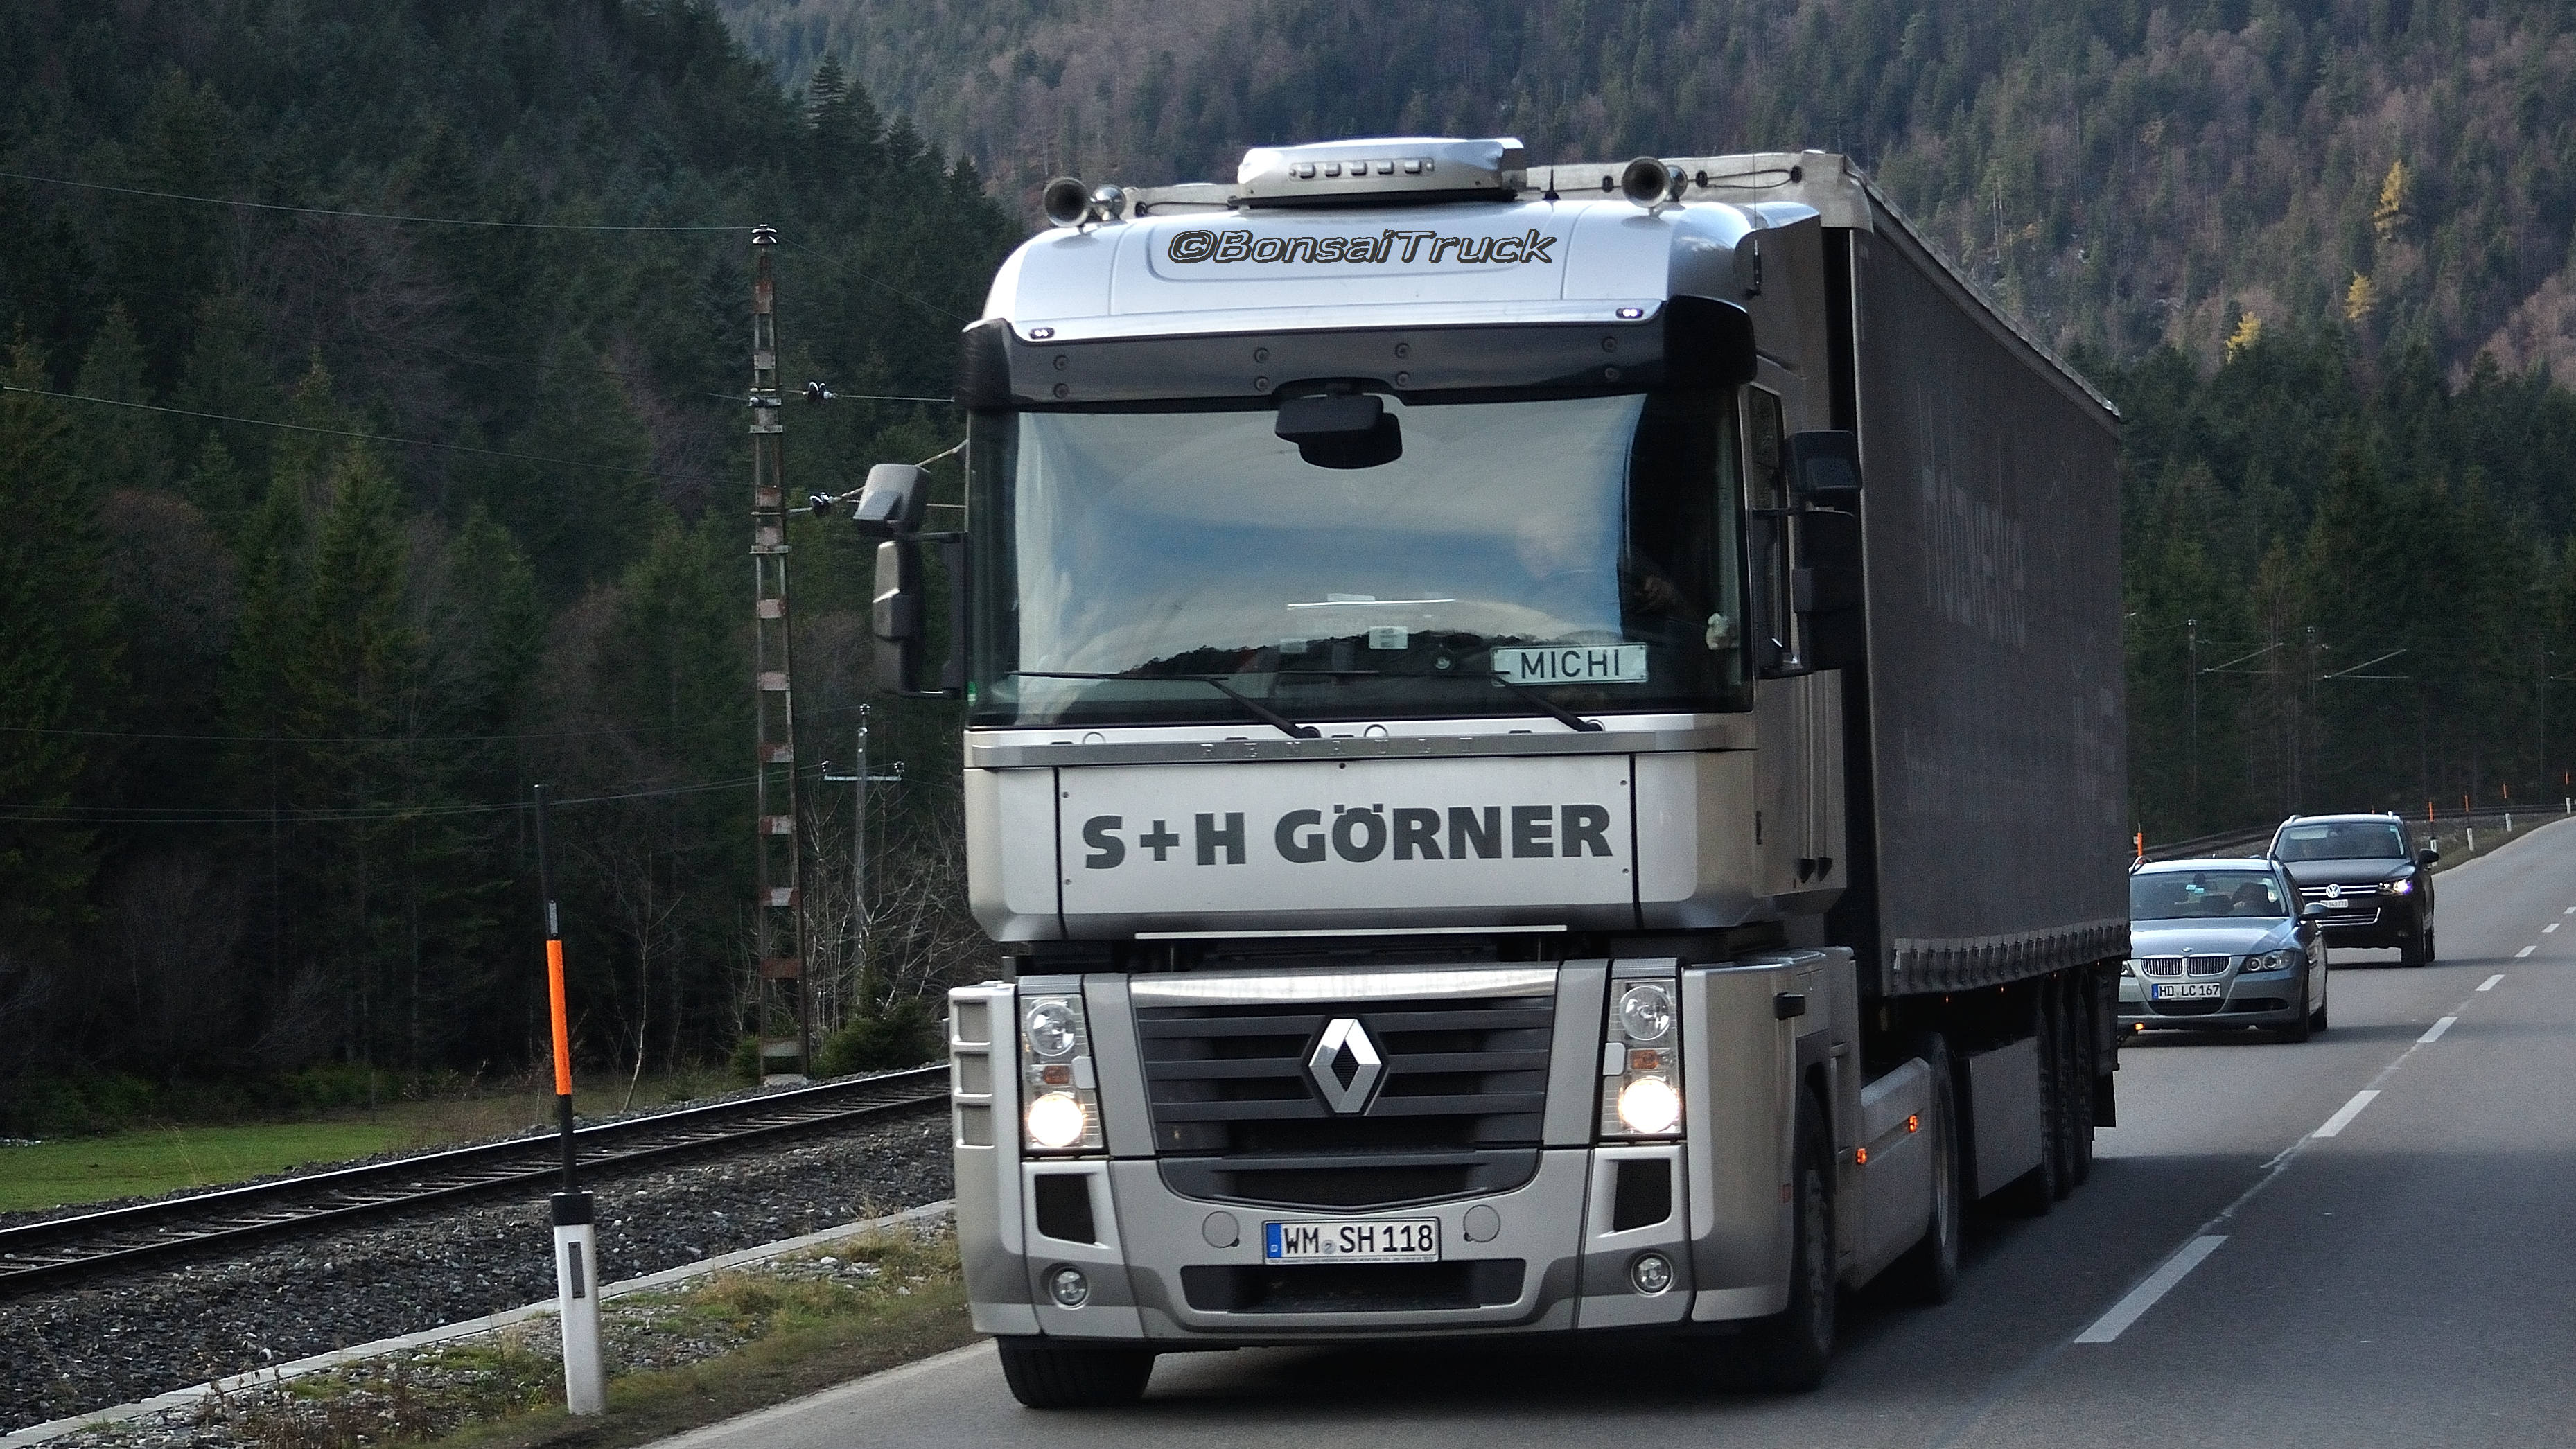 D - S+H Görner Renault Magnum | Flickr - Photo Sharing!